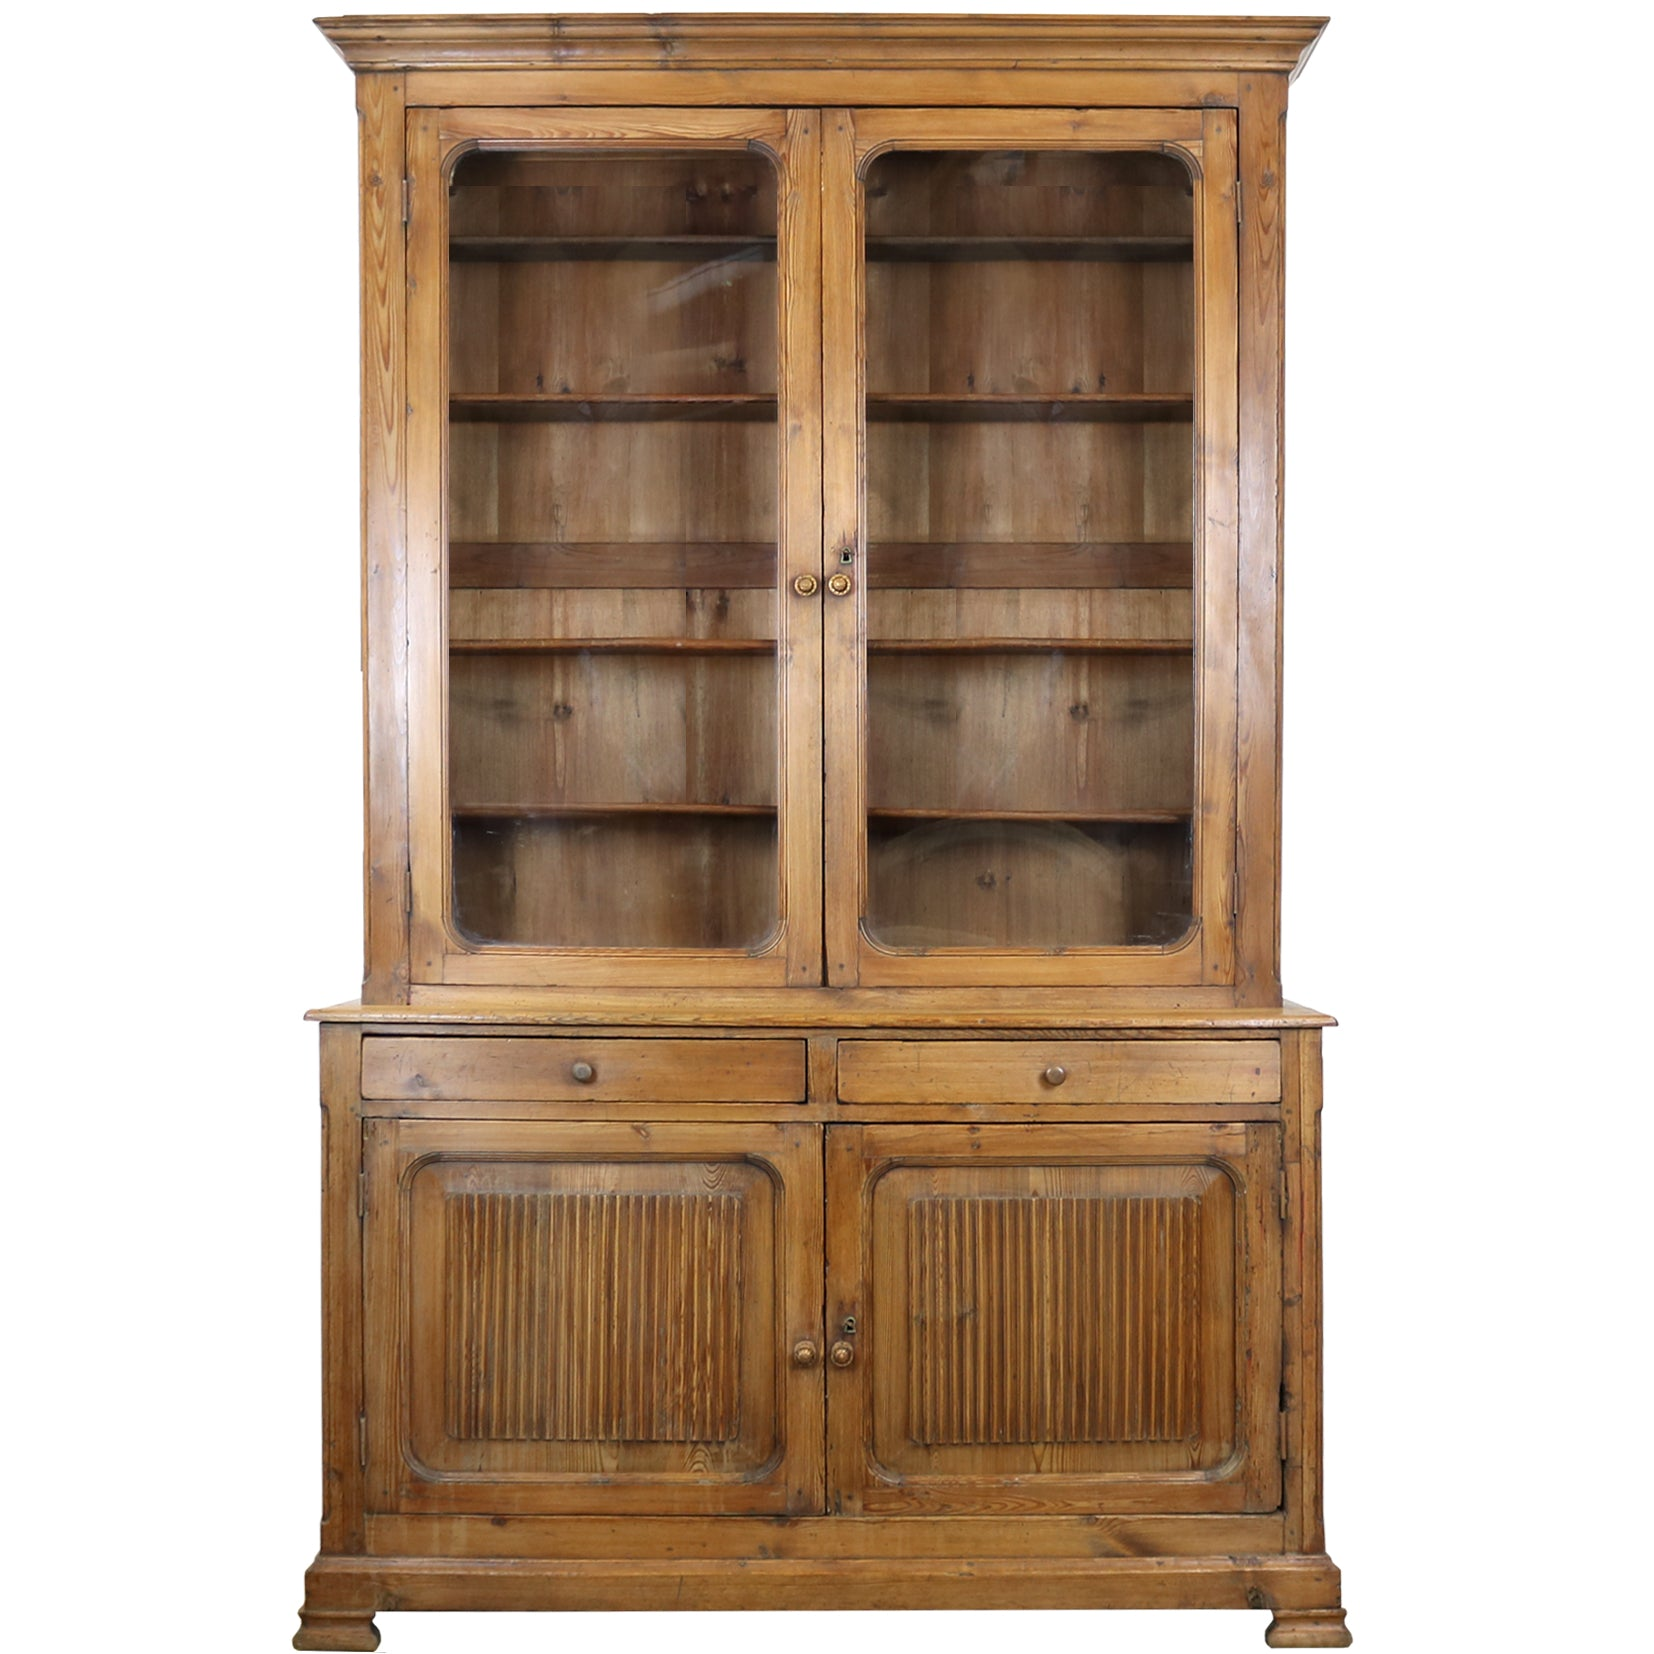 19th Century Pitch Pine Continental Dresser - The Architectural Forum